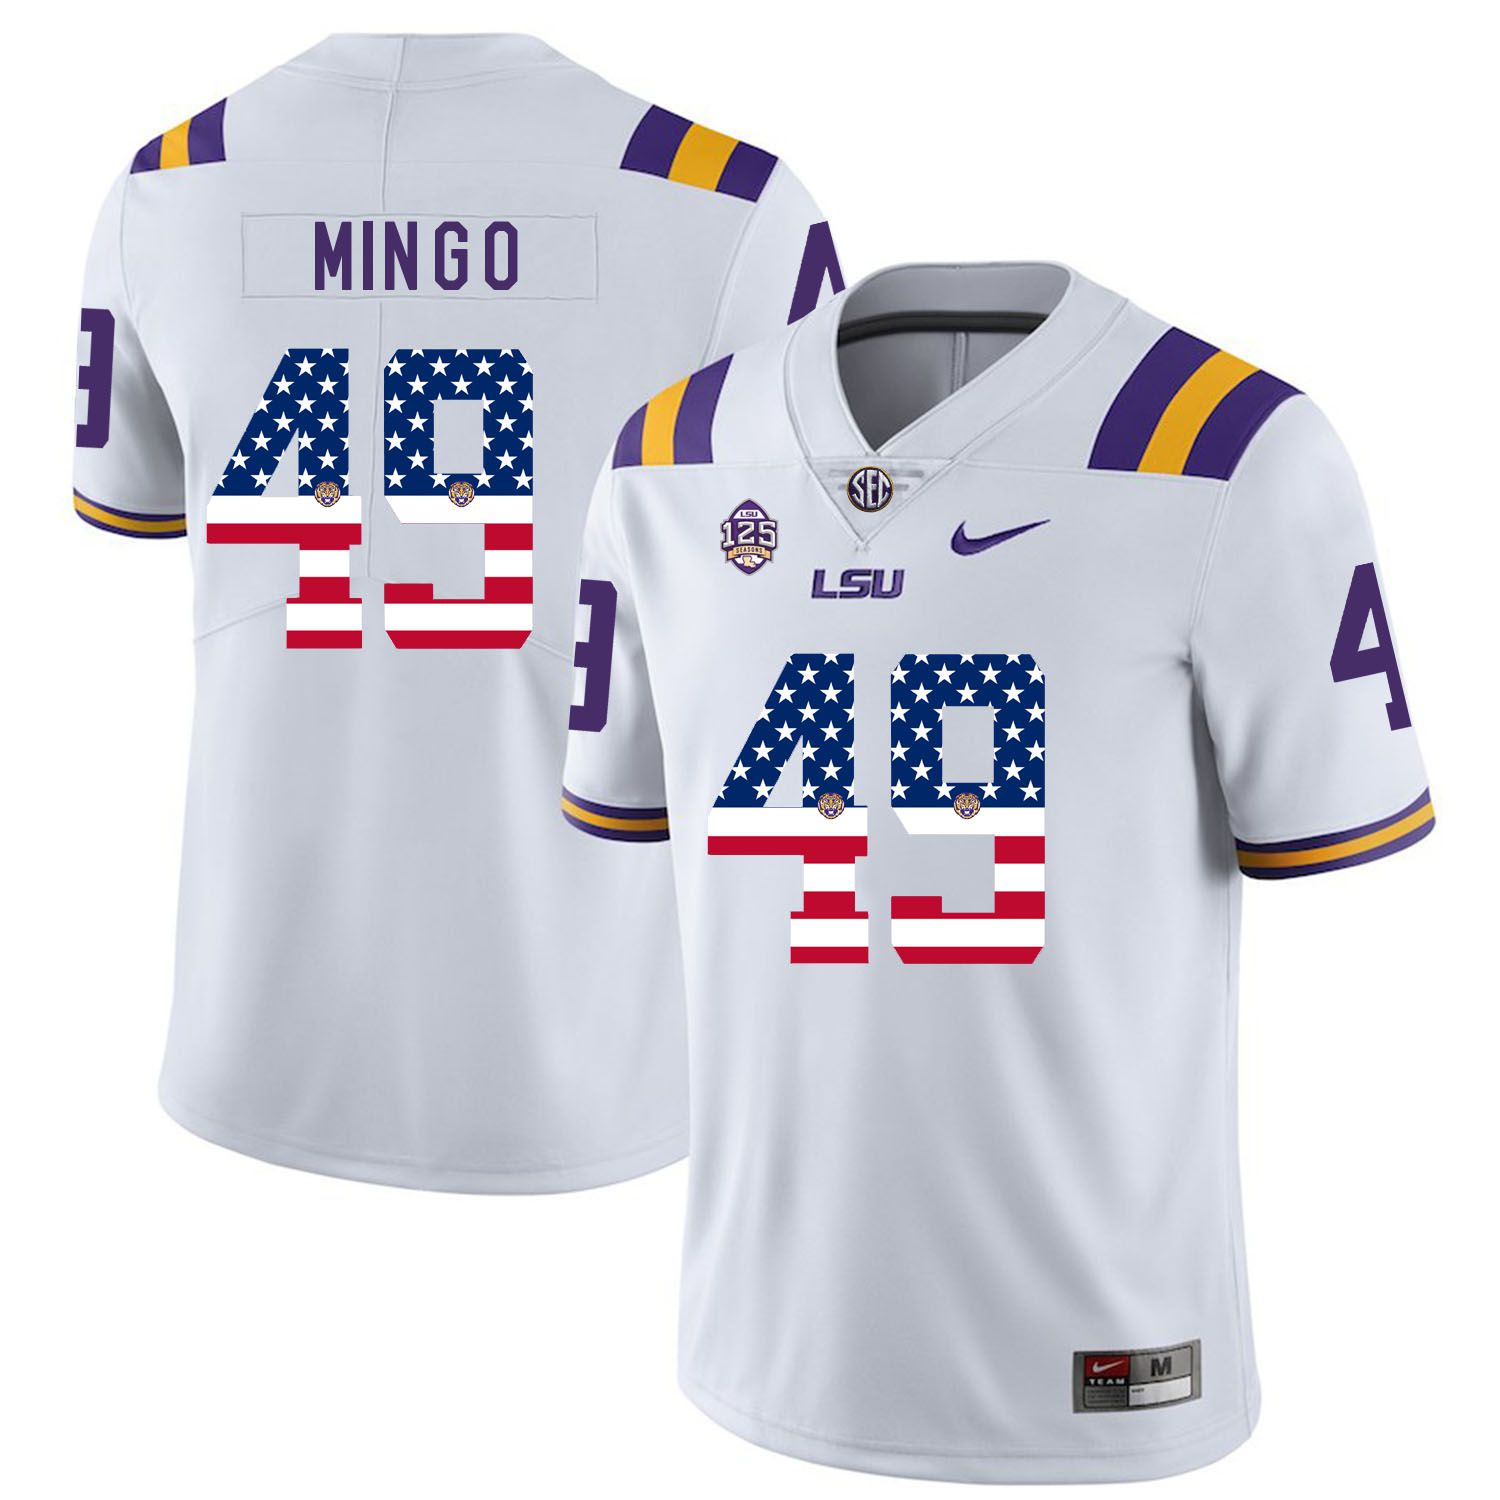 Men LSU Tigers 49 Mingo White Flag Customized NCAA Jerseys